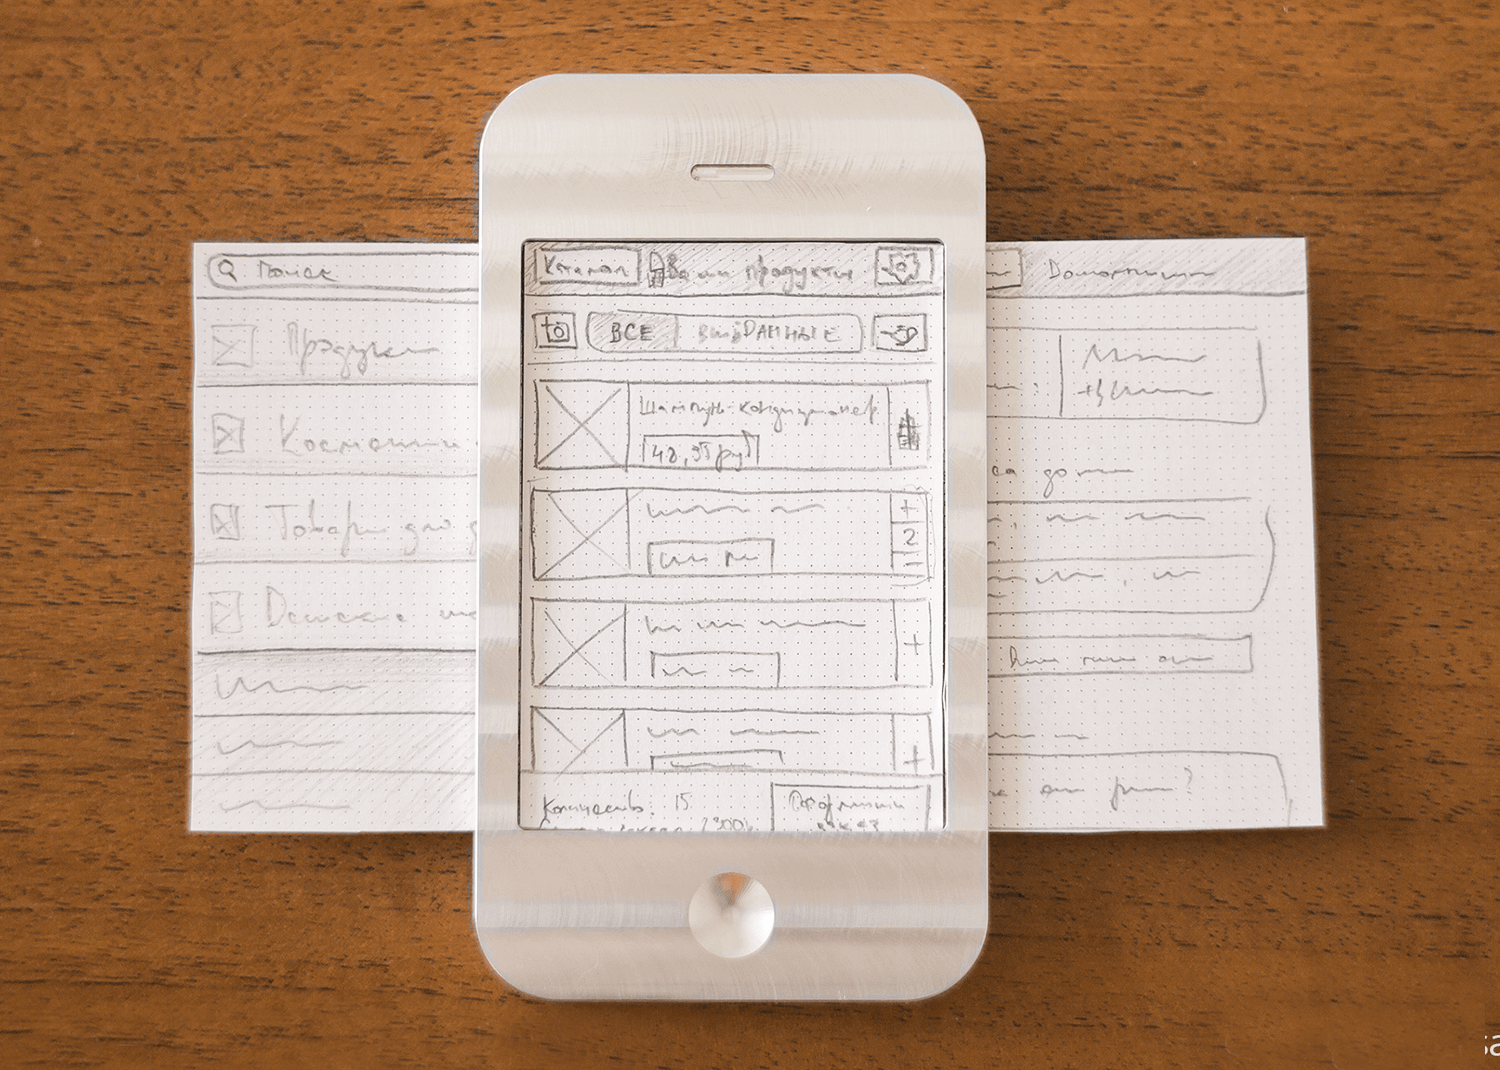 Paper prototyping with iPhone molds